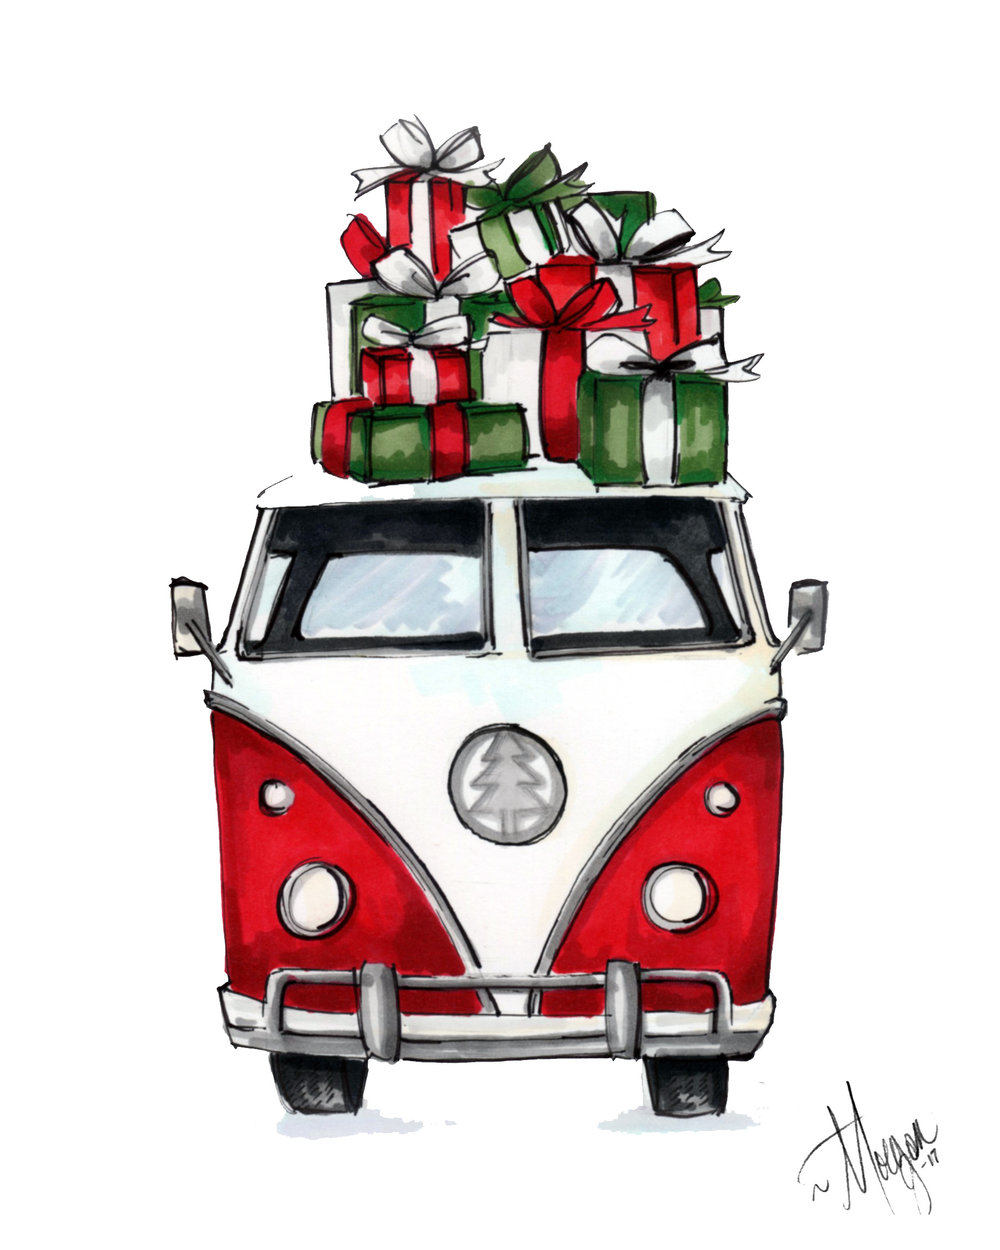 van-with-gifts-illustration-morgan-swank-studio.jpg